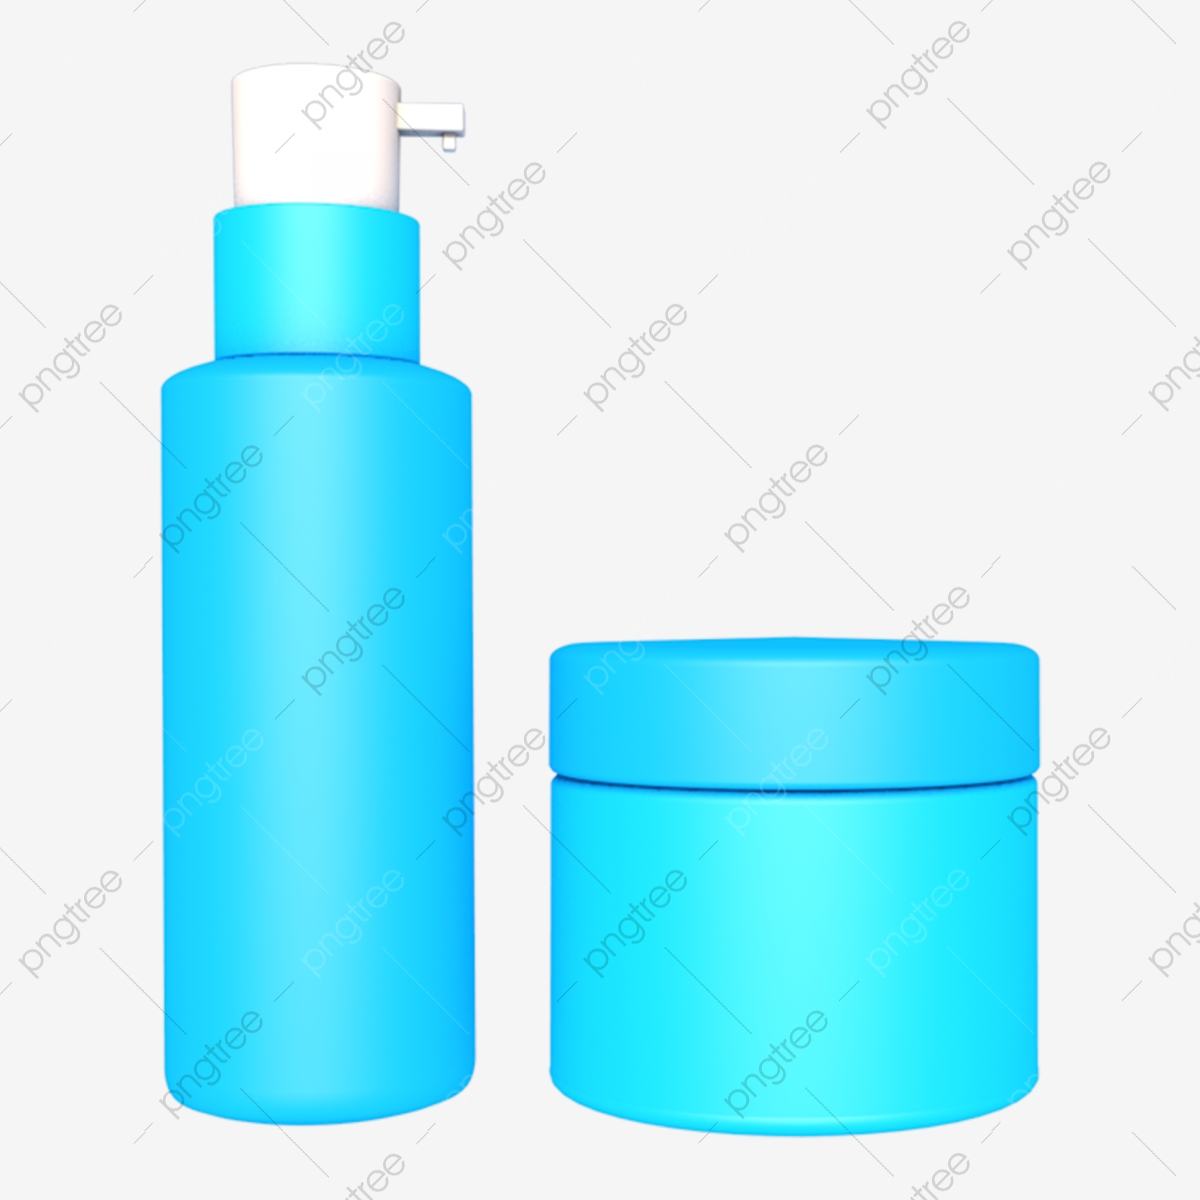 C4d Stereo Blue Cosmetic Model, C4d, Blue Cosmetics, Cosmetic PNG